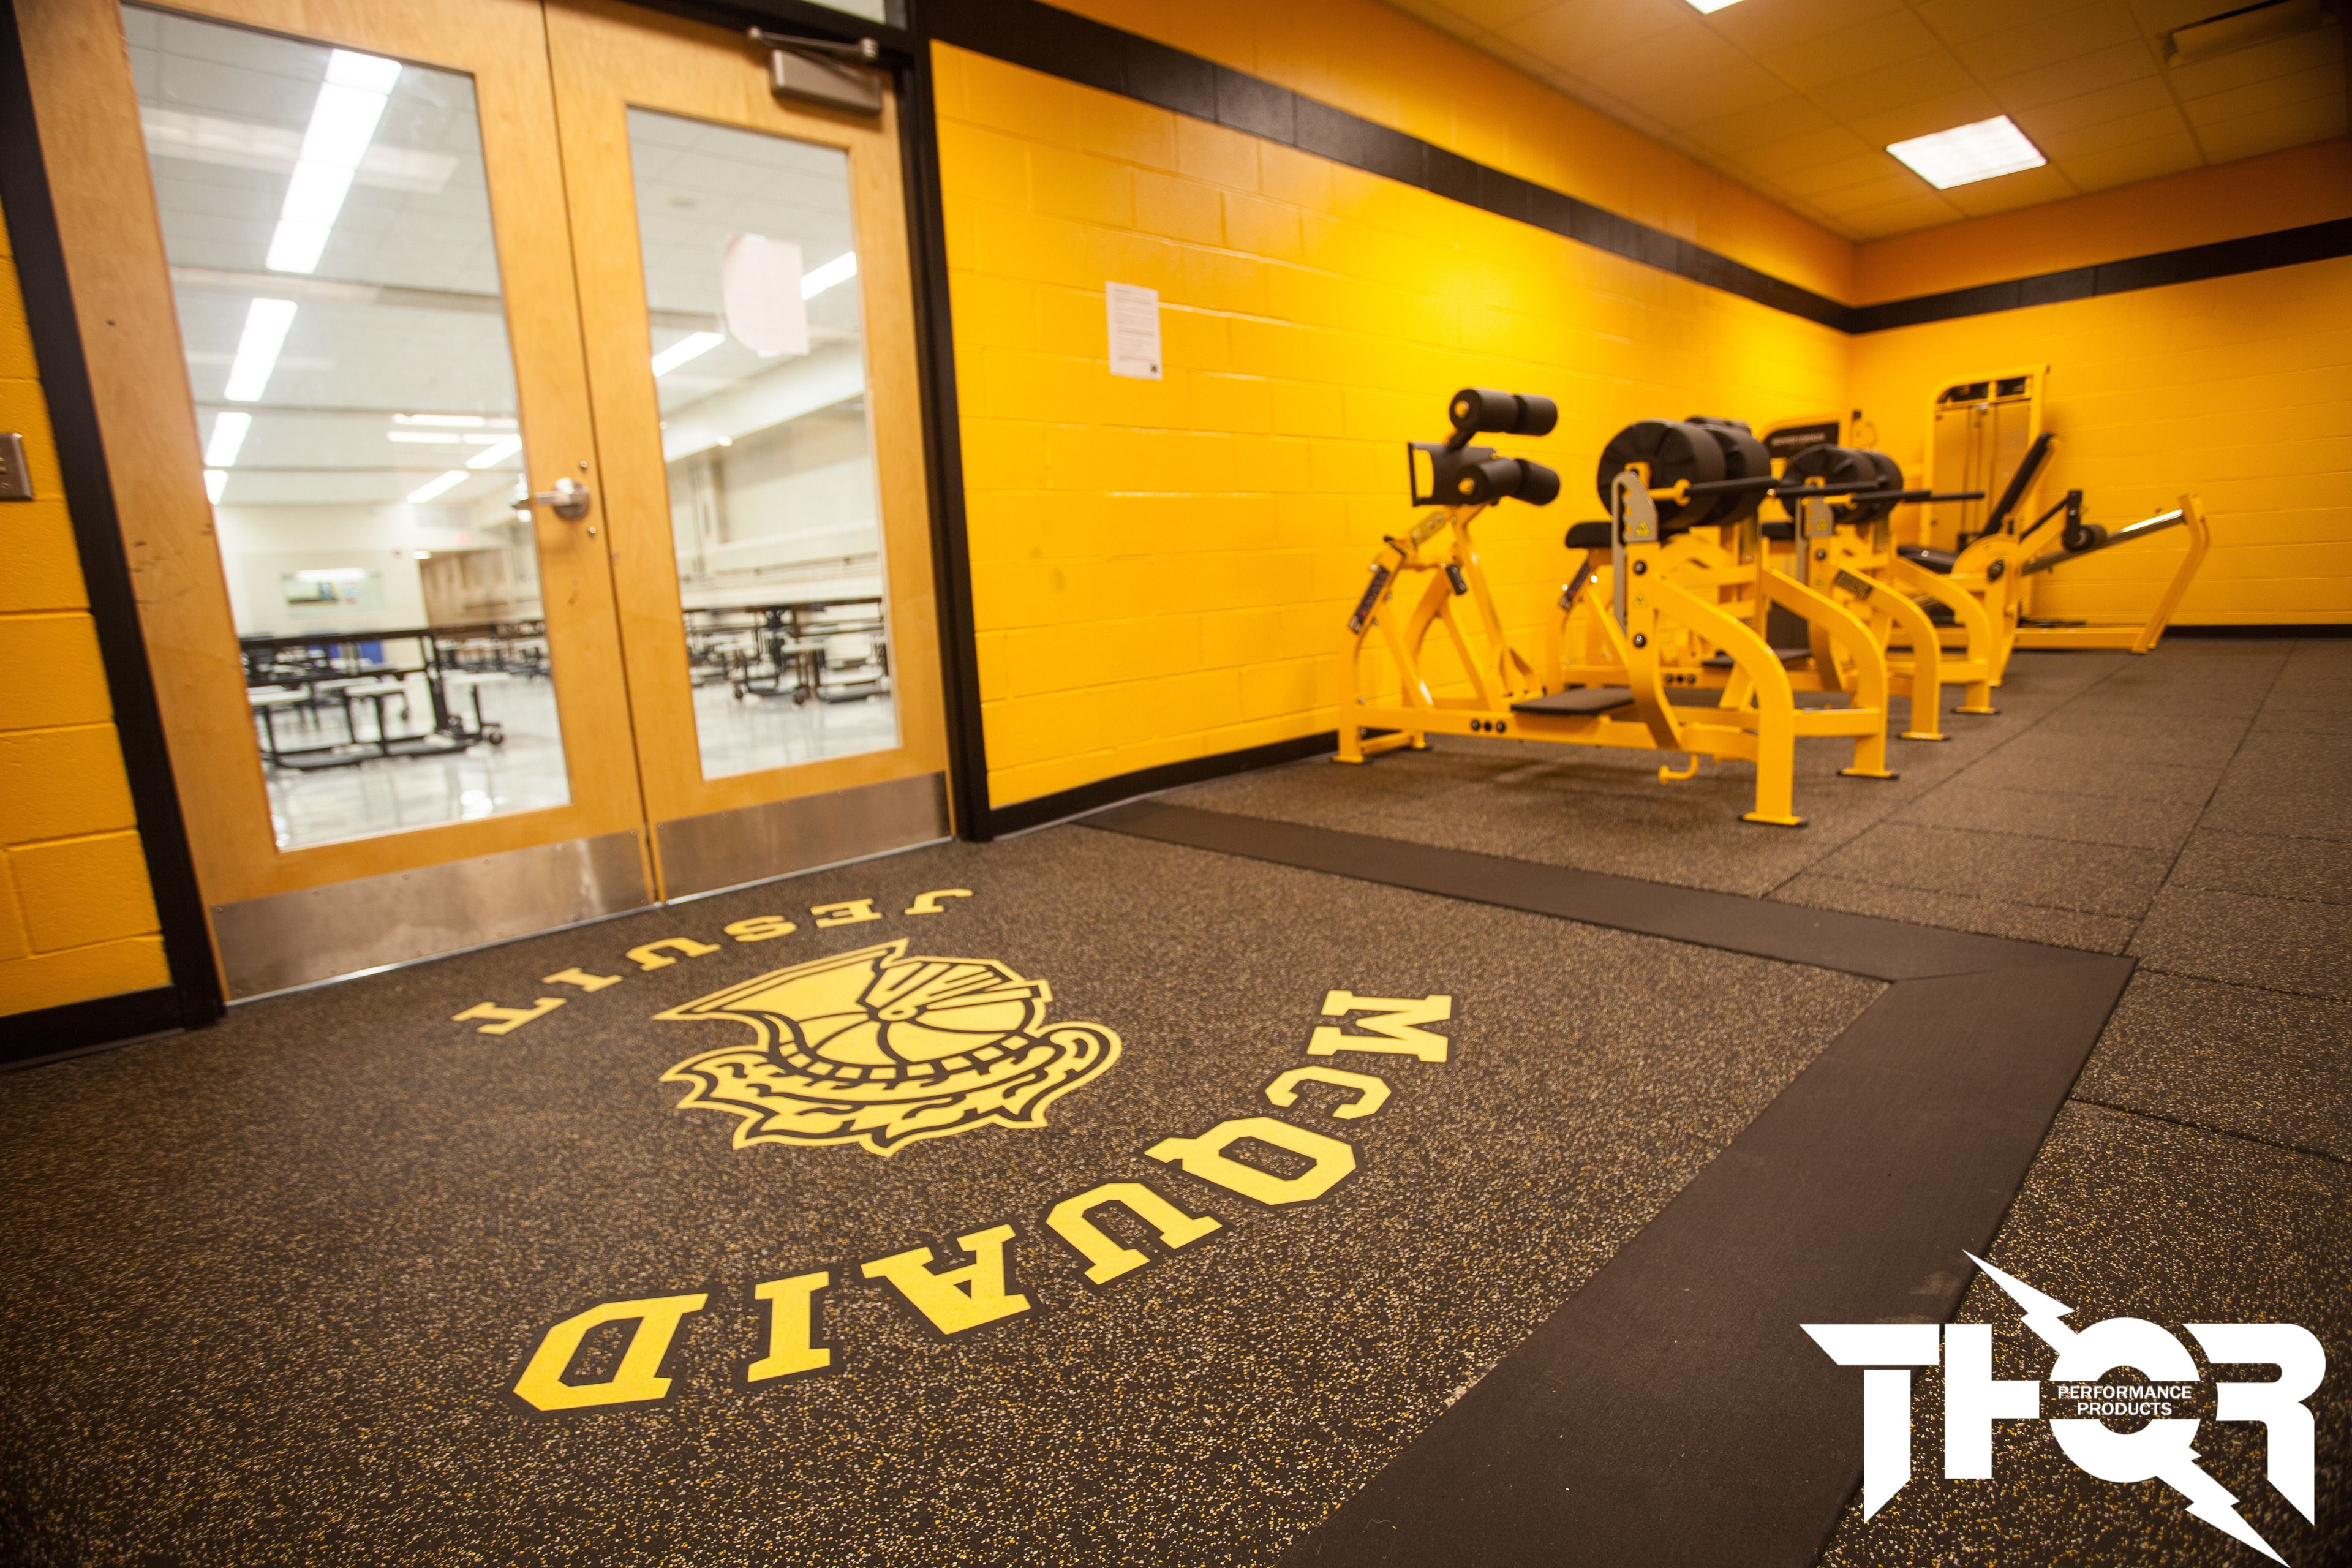 80 Weight Room Flooring By Thor Performance Products Ideas In 2021 Weight Room Flooring Rubber Flooring Flooring